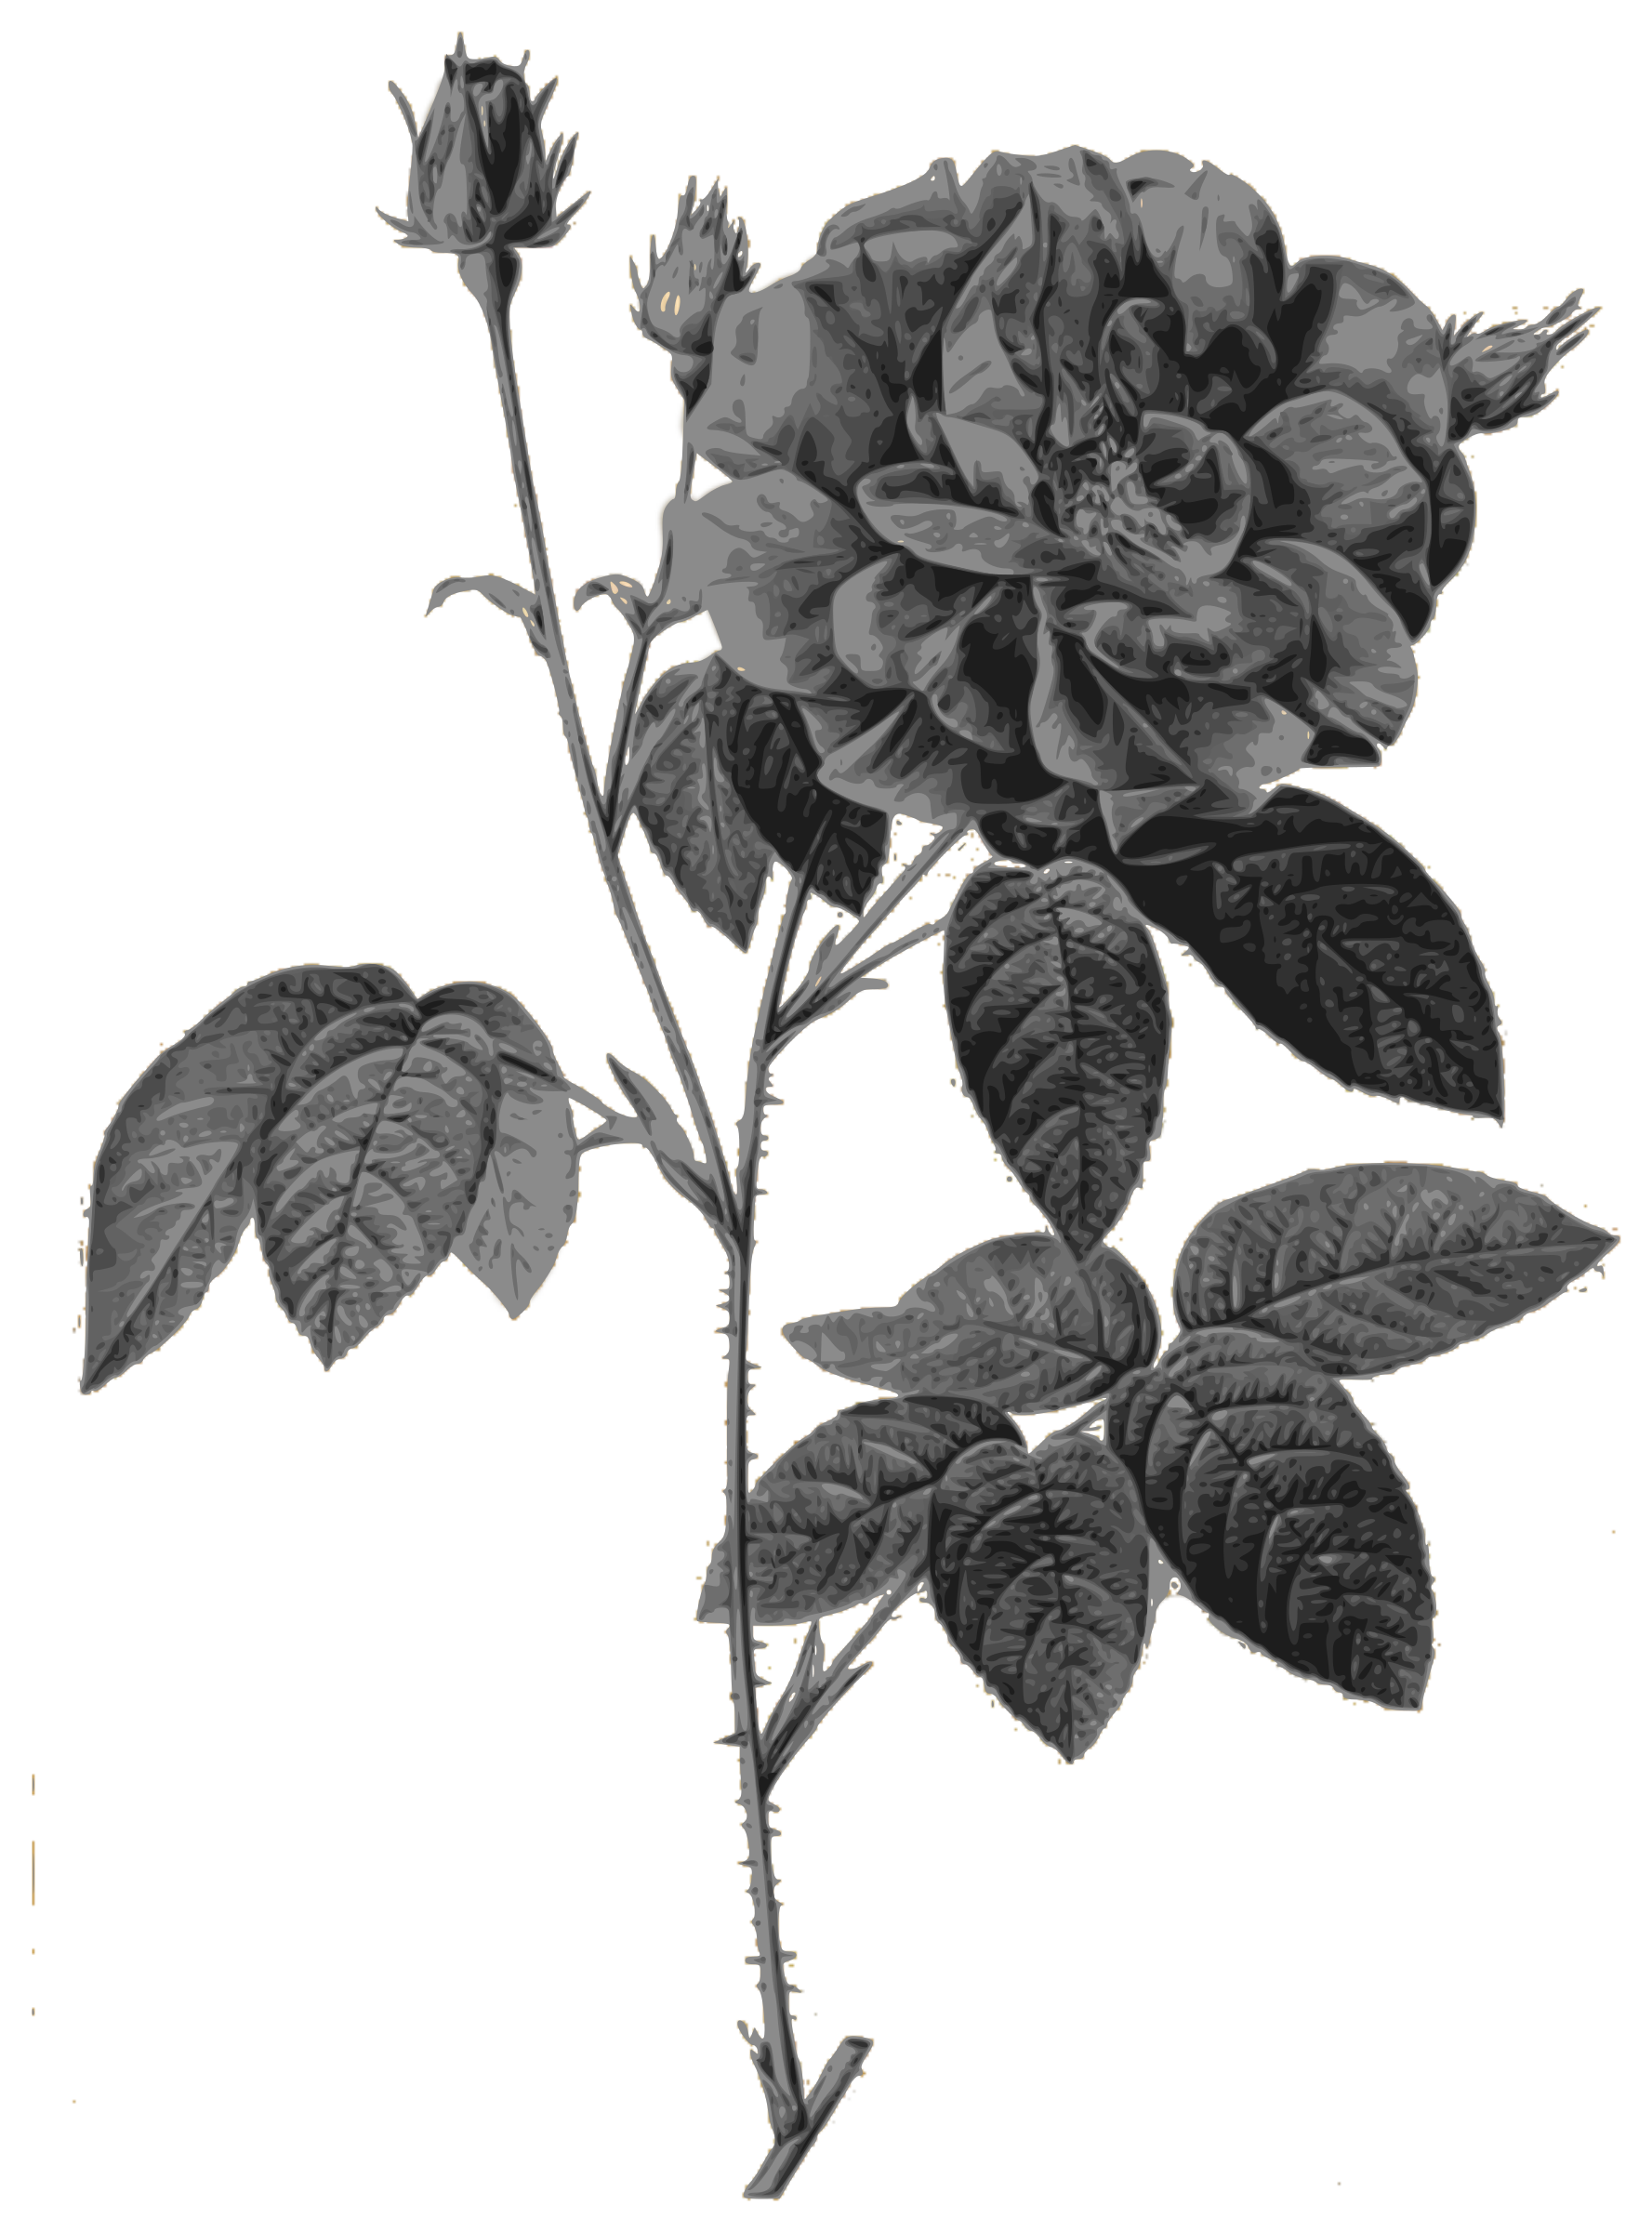 Redoute - Rosa gallica officinalis - grayscale by warszawianka